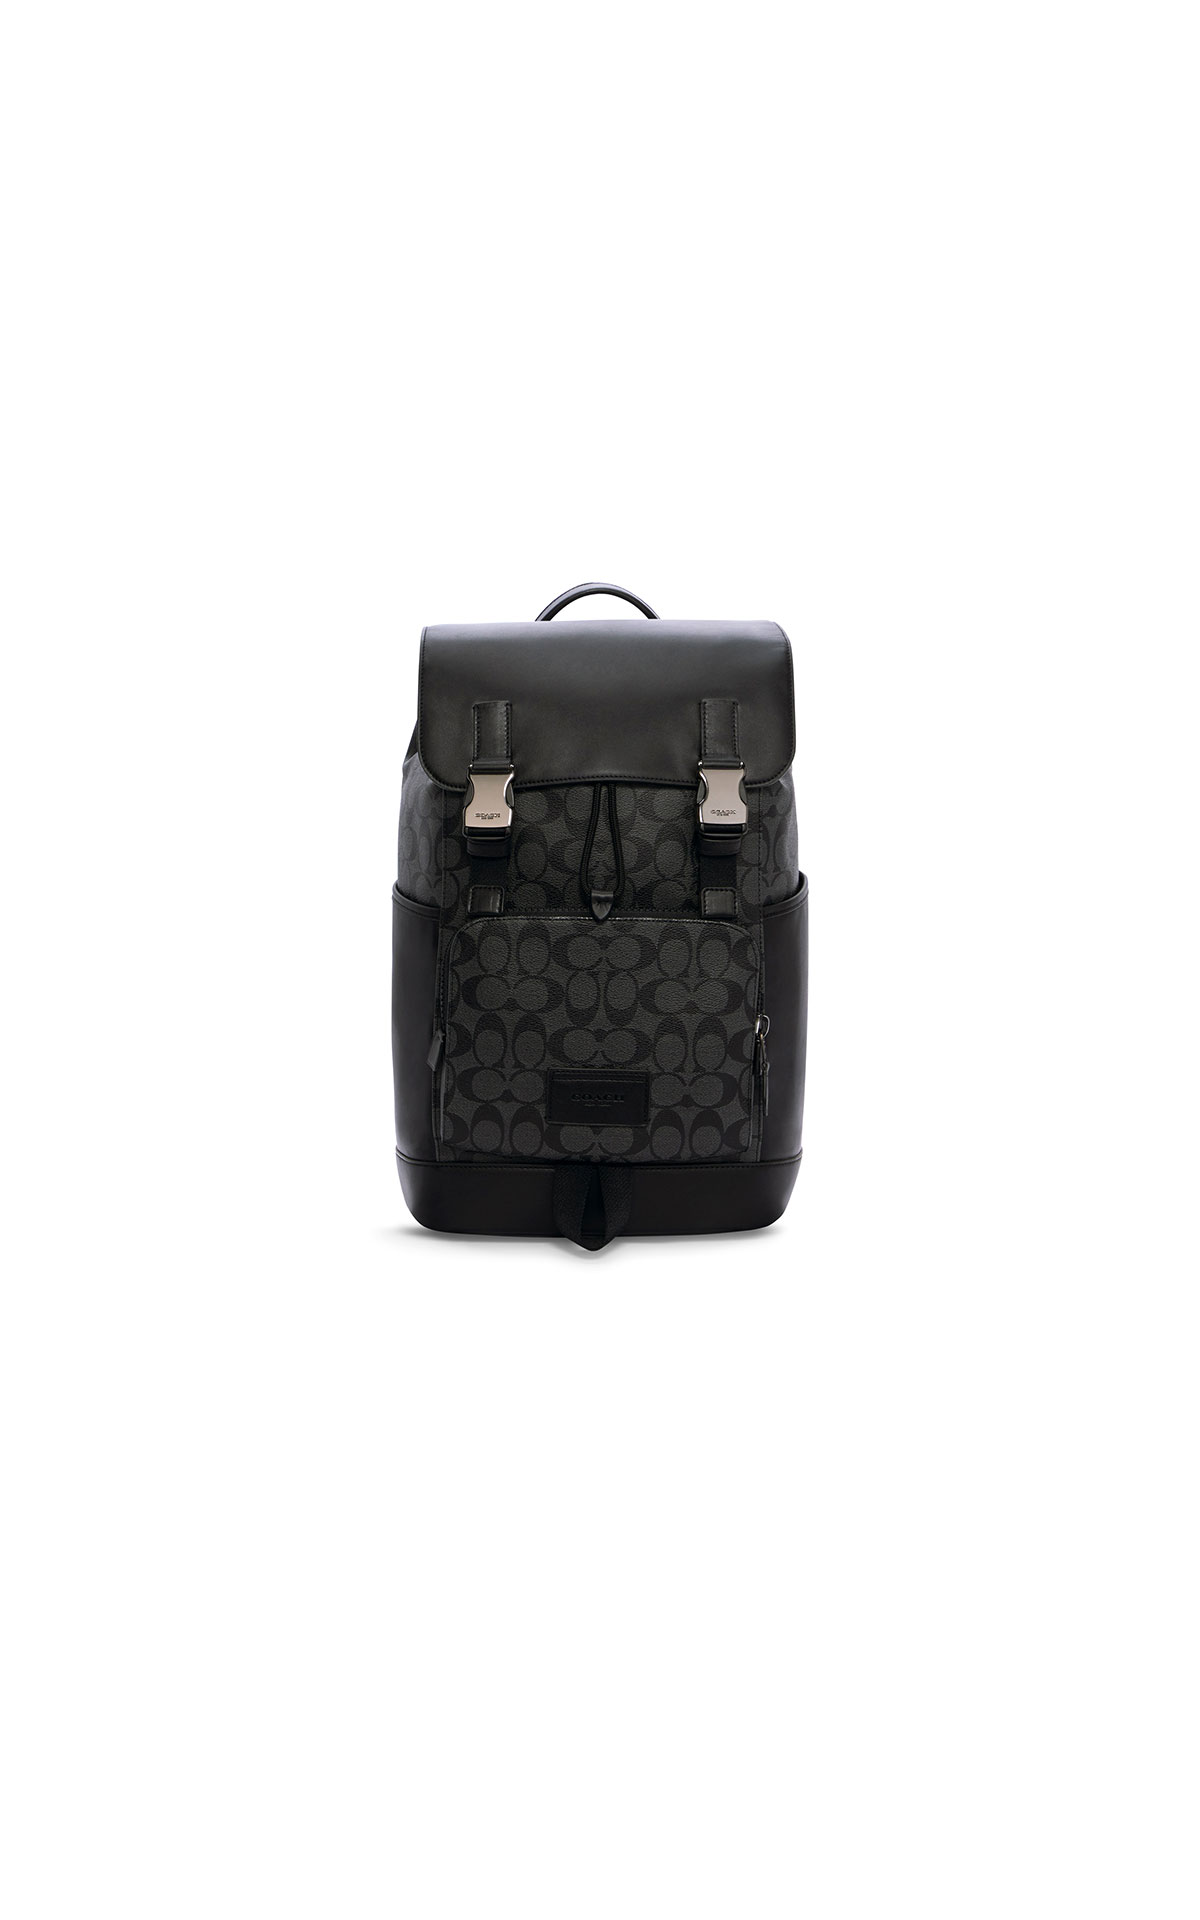 Coach track backpack